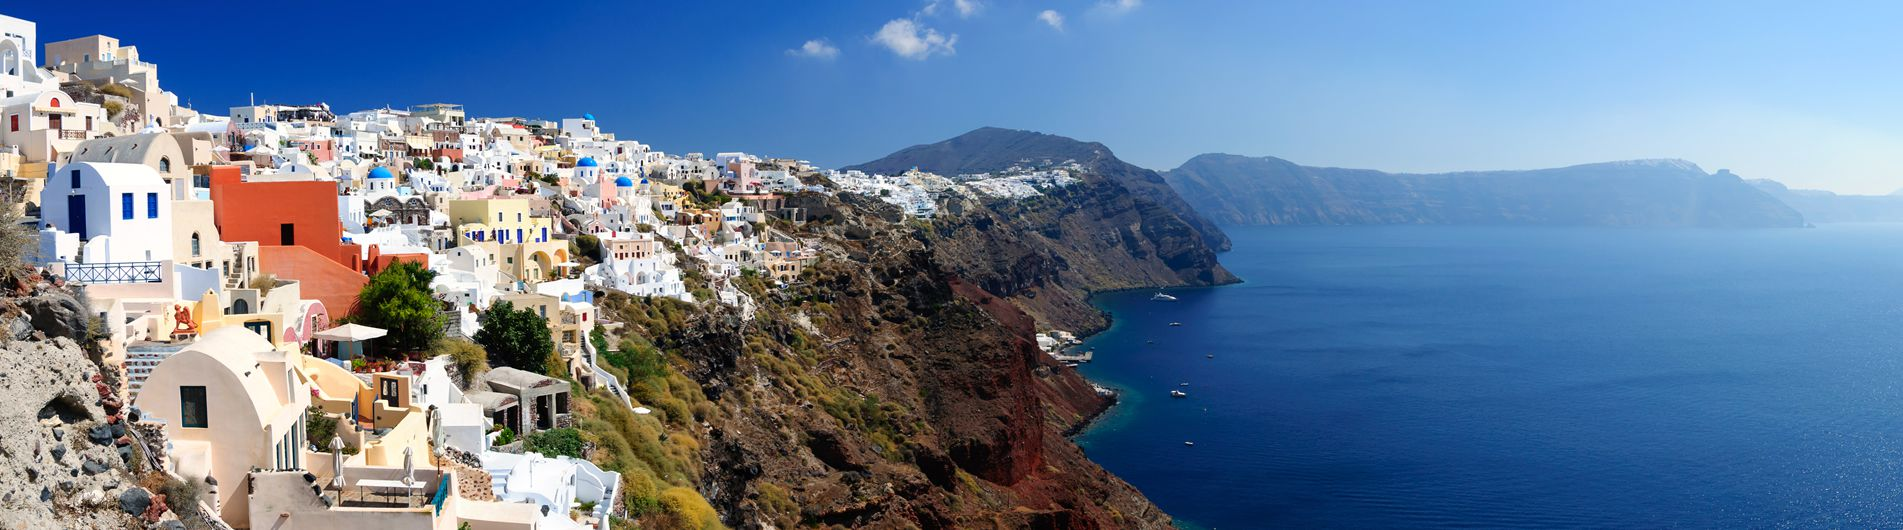 Passing Through Santorini